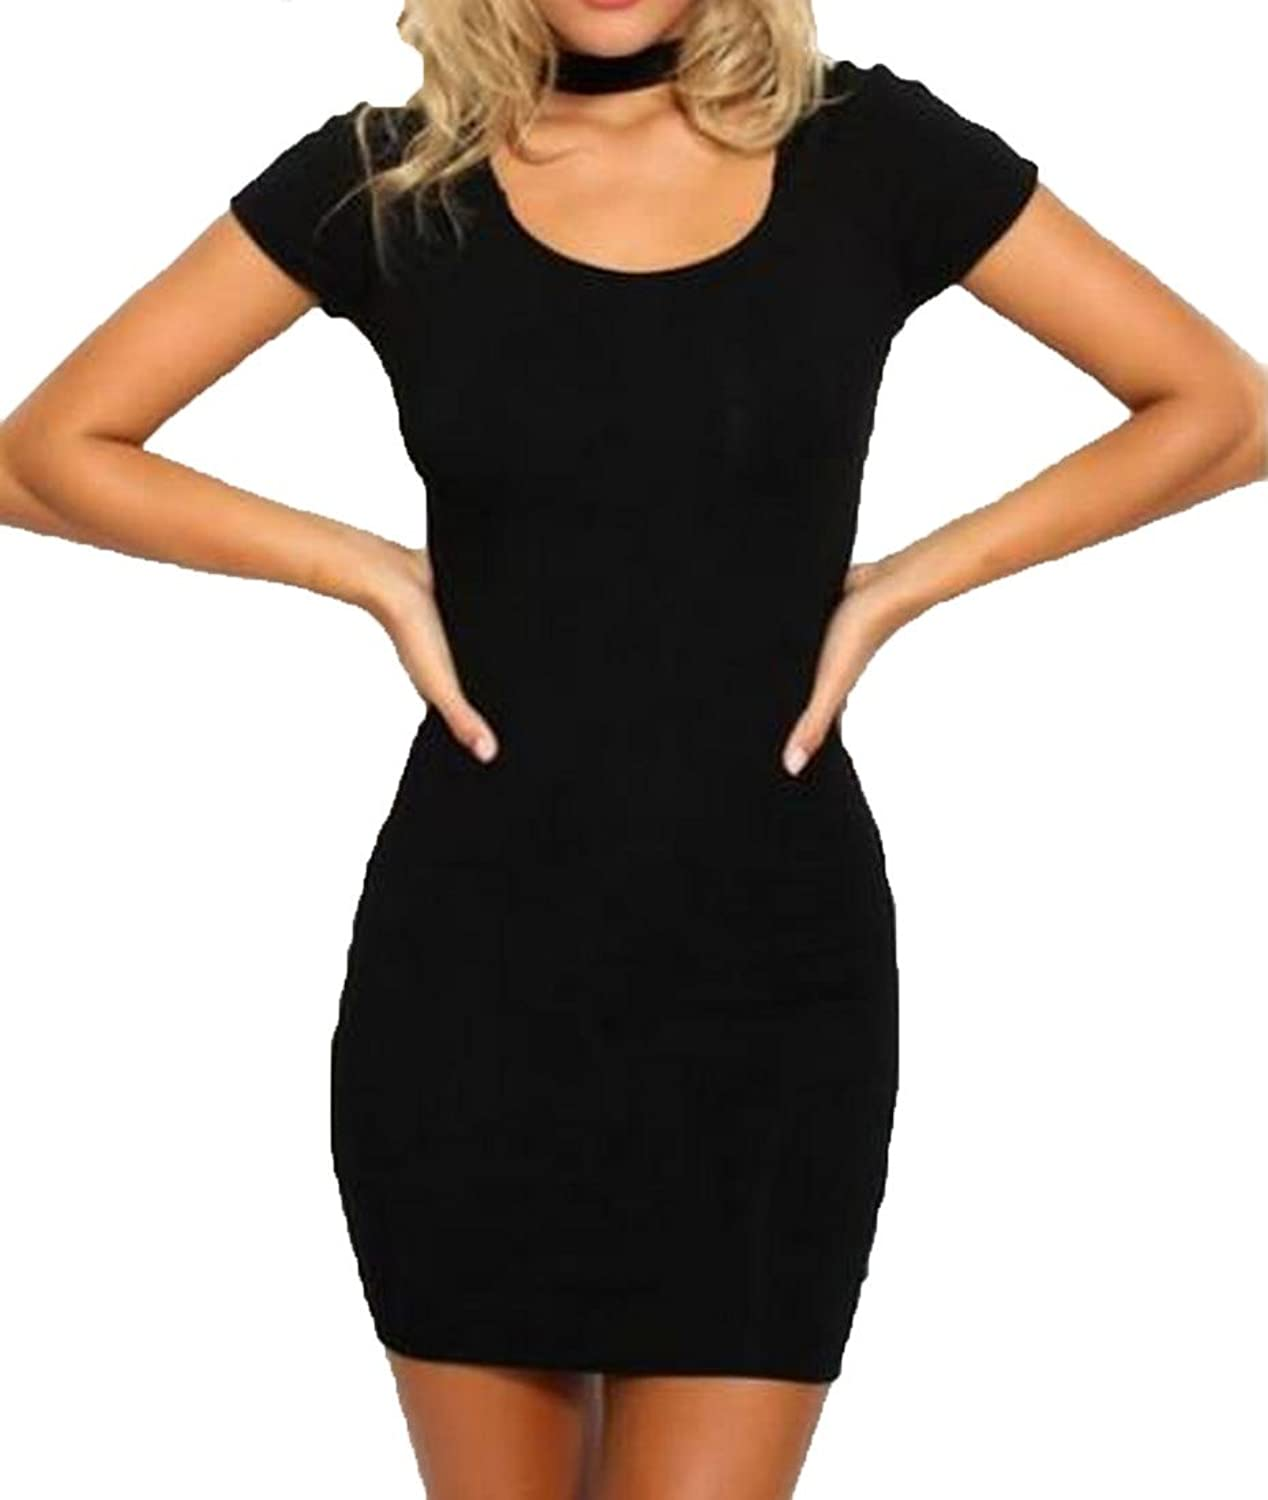 Winwinus Womens Girls Slim Fit Sexy Solid Color Pencil Dress Black US L